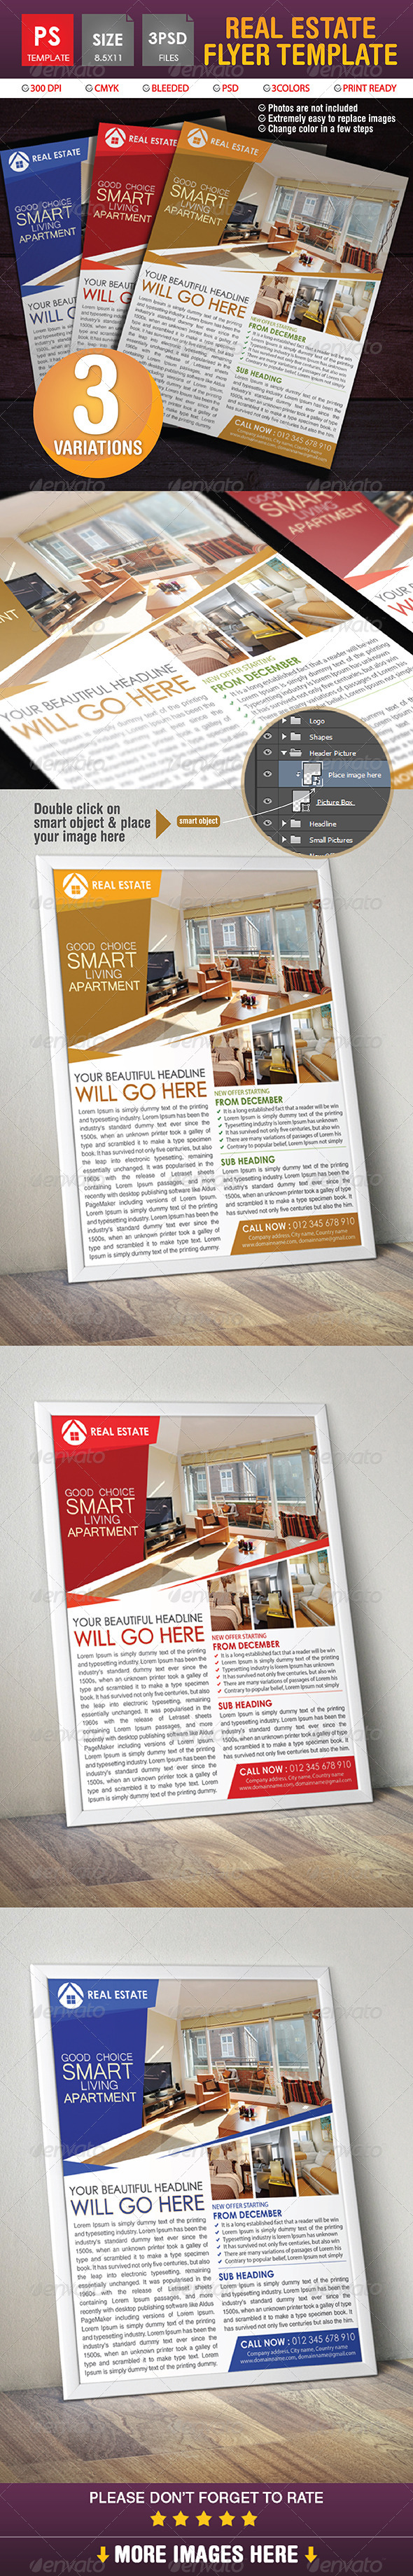 GraphicRiver Real Estate Flyer Template 8678858